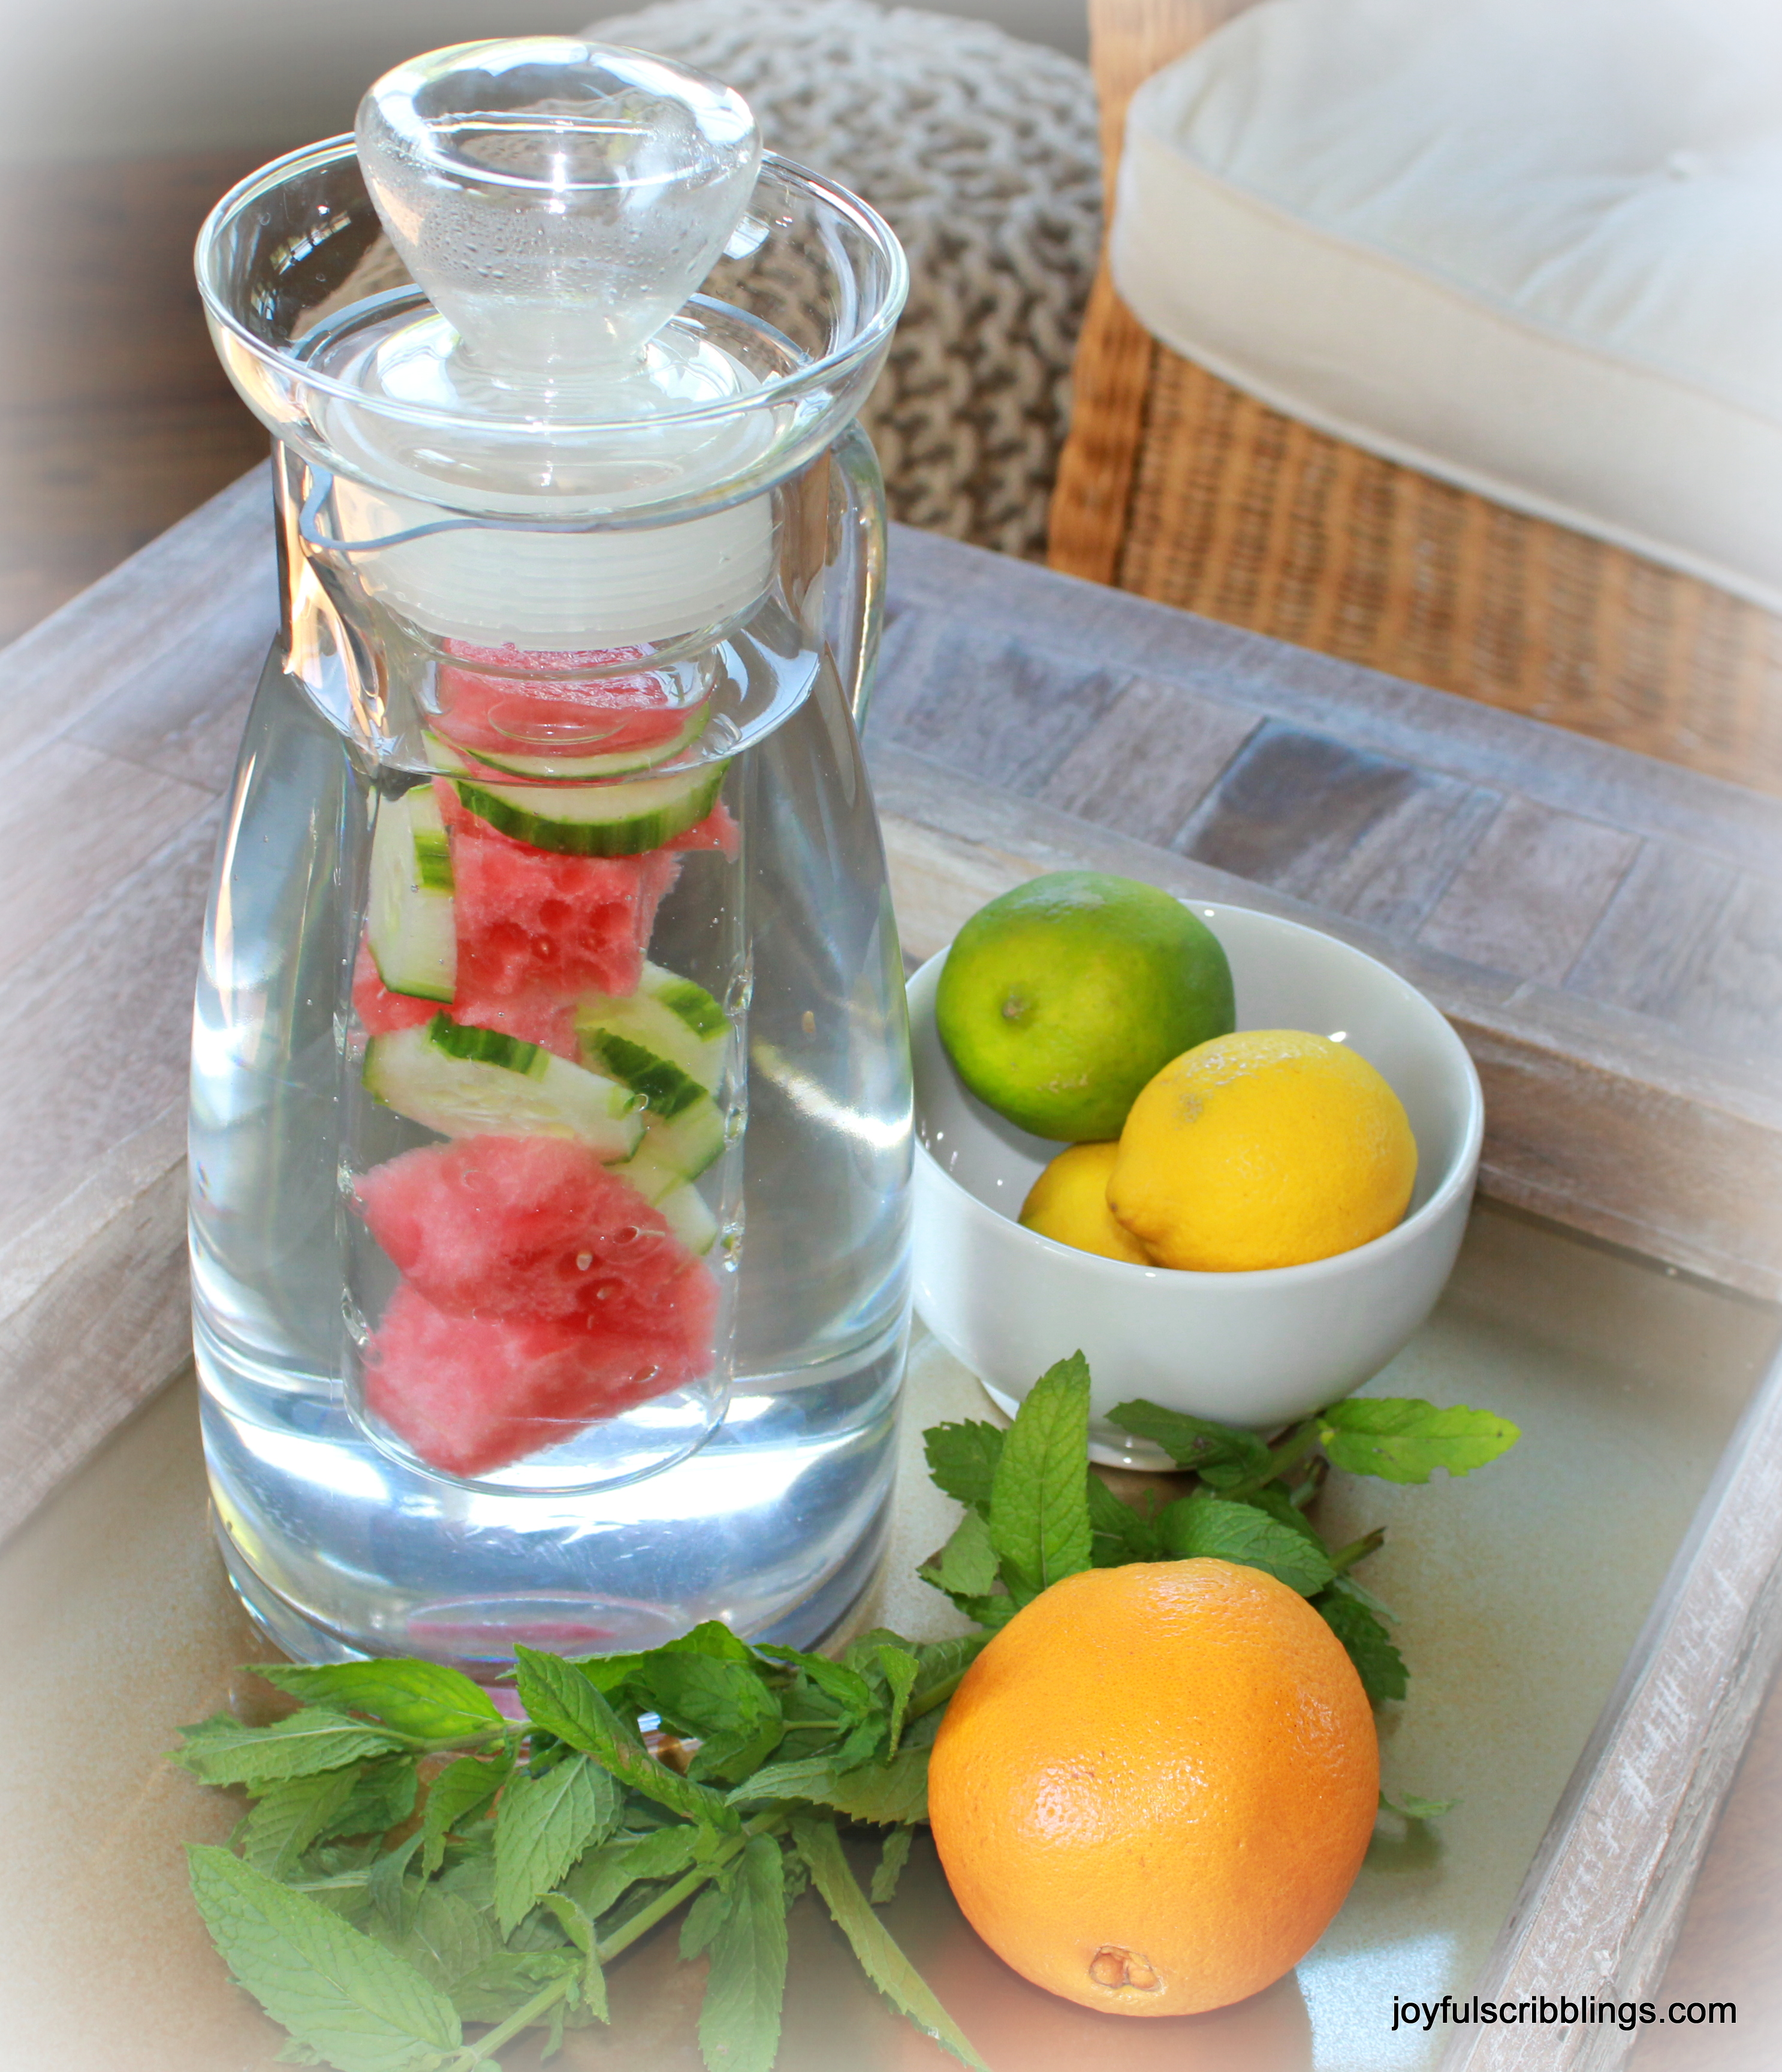 Jun 14, · Hi Mia, The Watermelon Fruit Infused Drink is the unique and the different one, I didn't found it anywhere else.. Few days one of my friend advice me take detox water to detoxing my body.